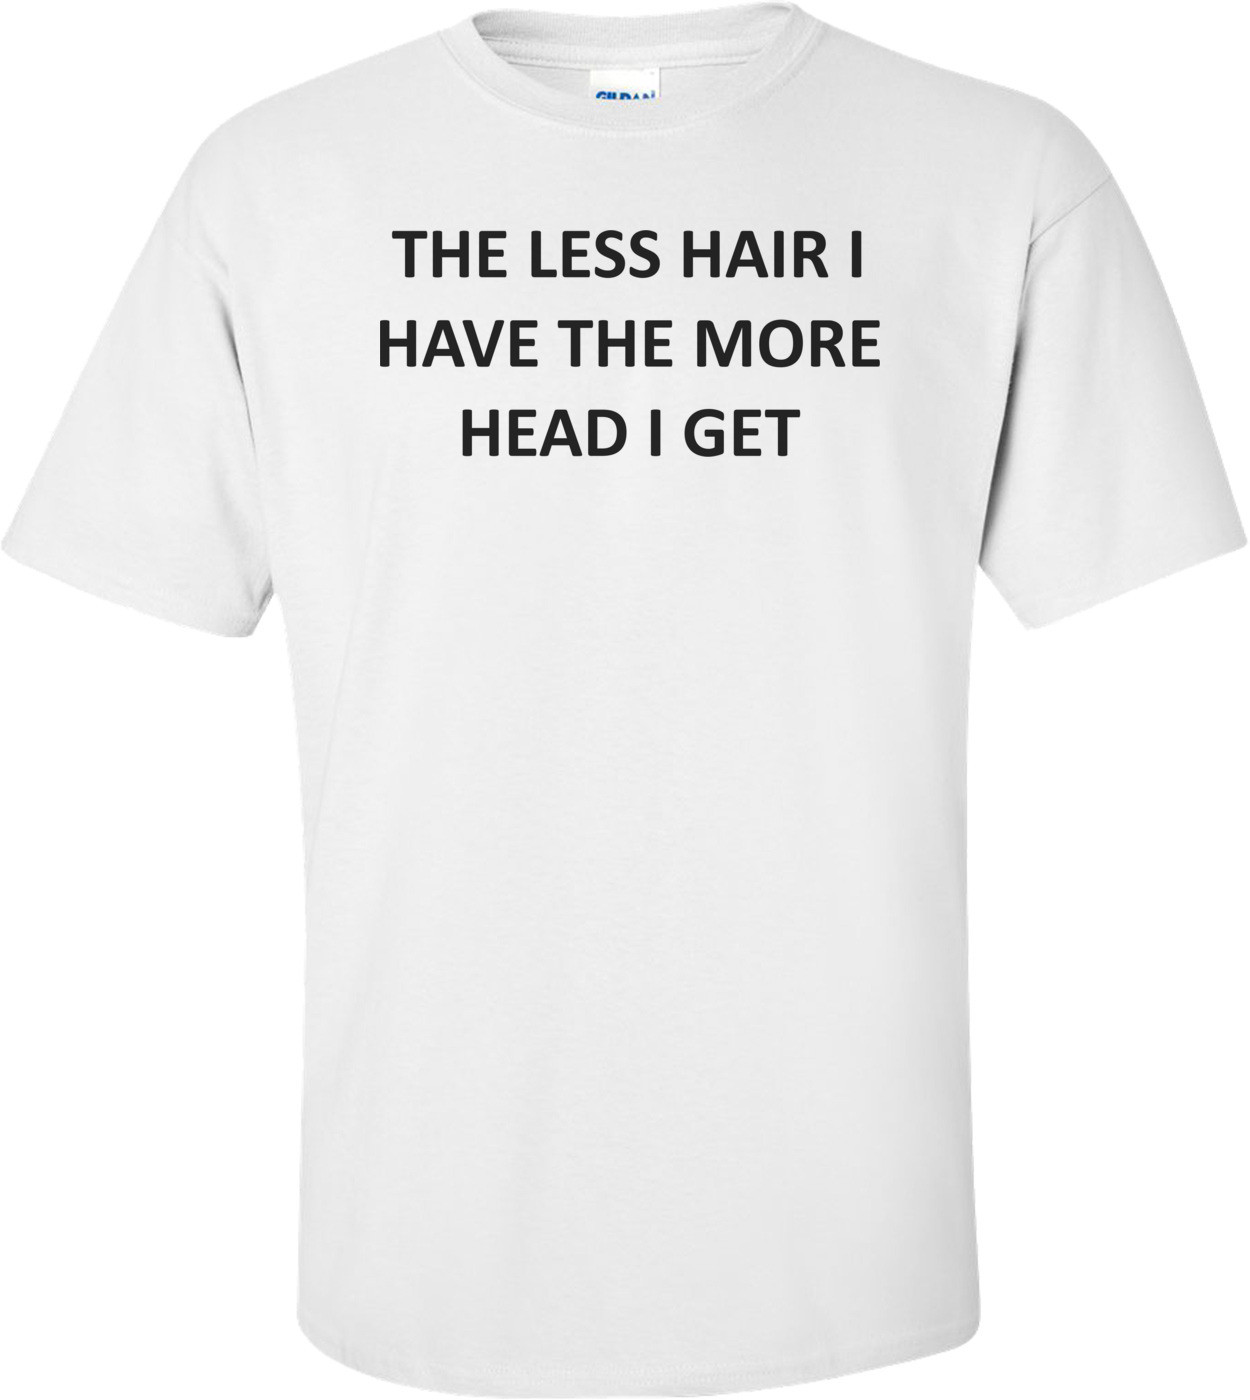 THE LESS HAIR I HAVE THE MORE HEAD I GET Shirt